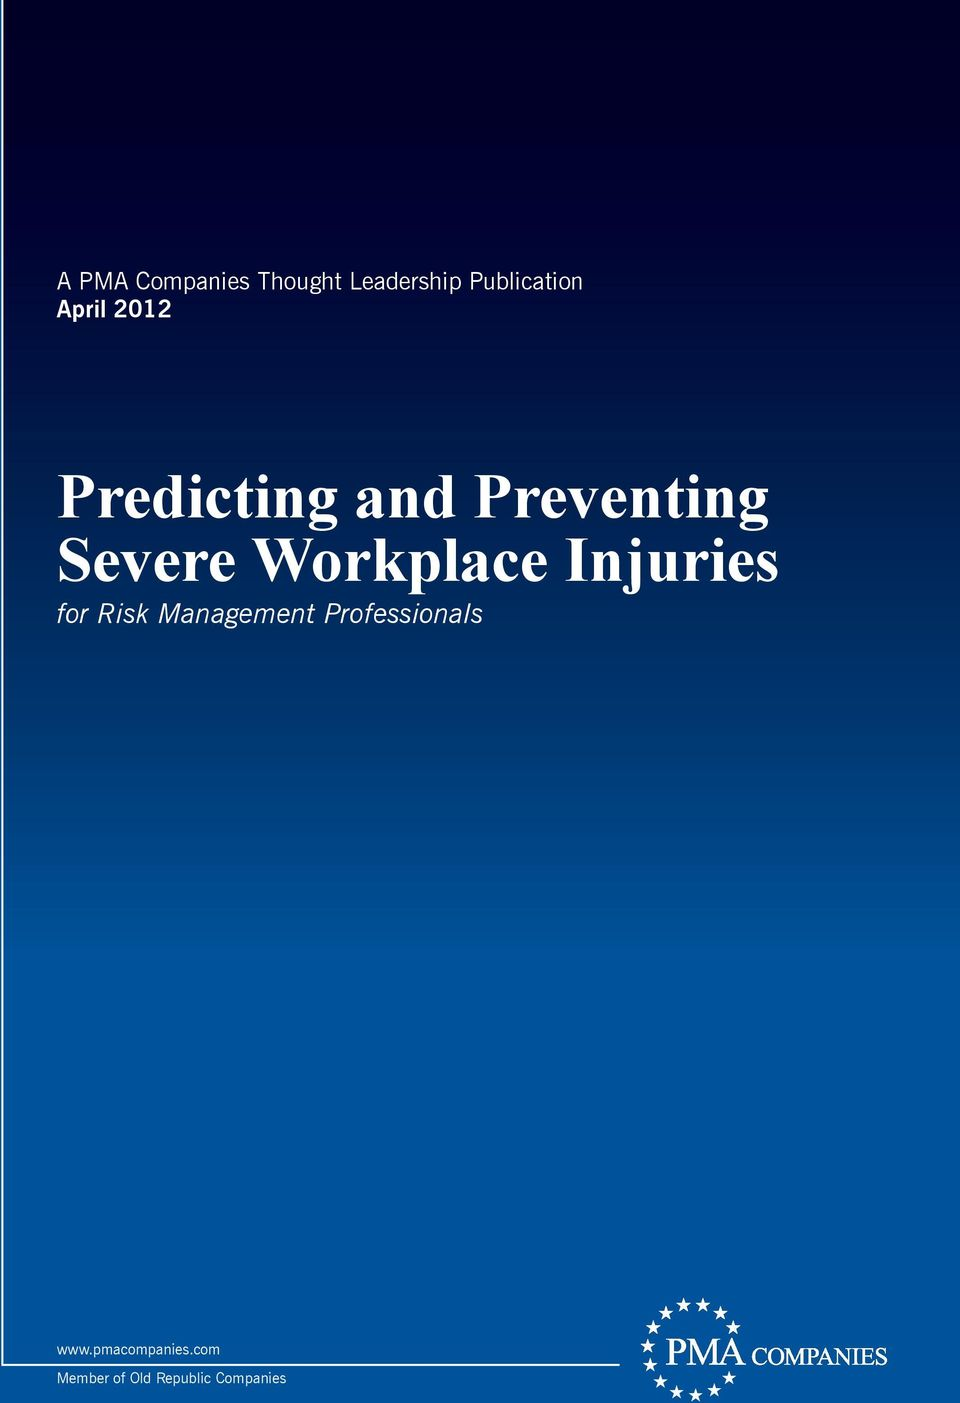 Workplace Injuries for Risk Management